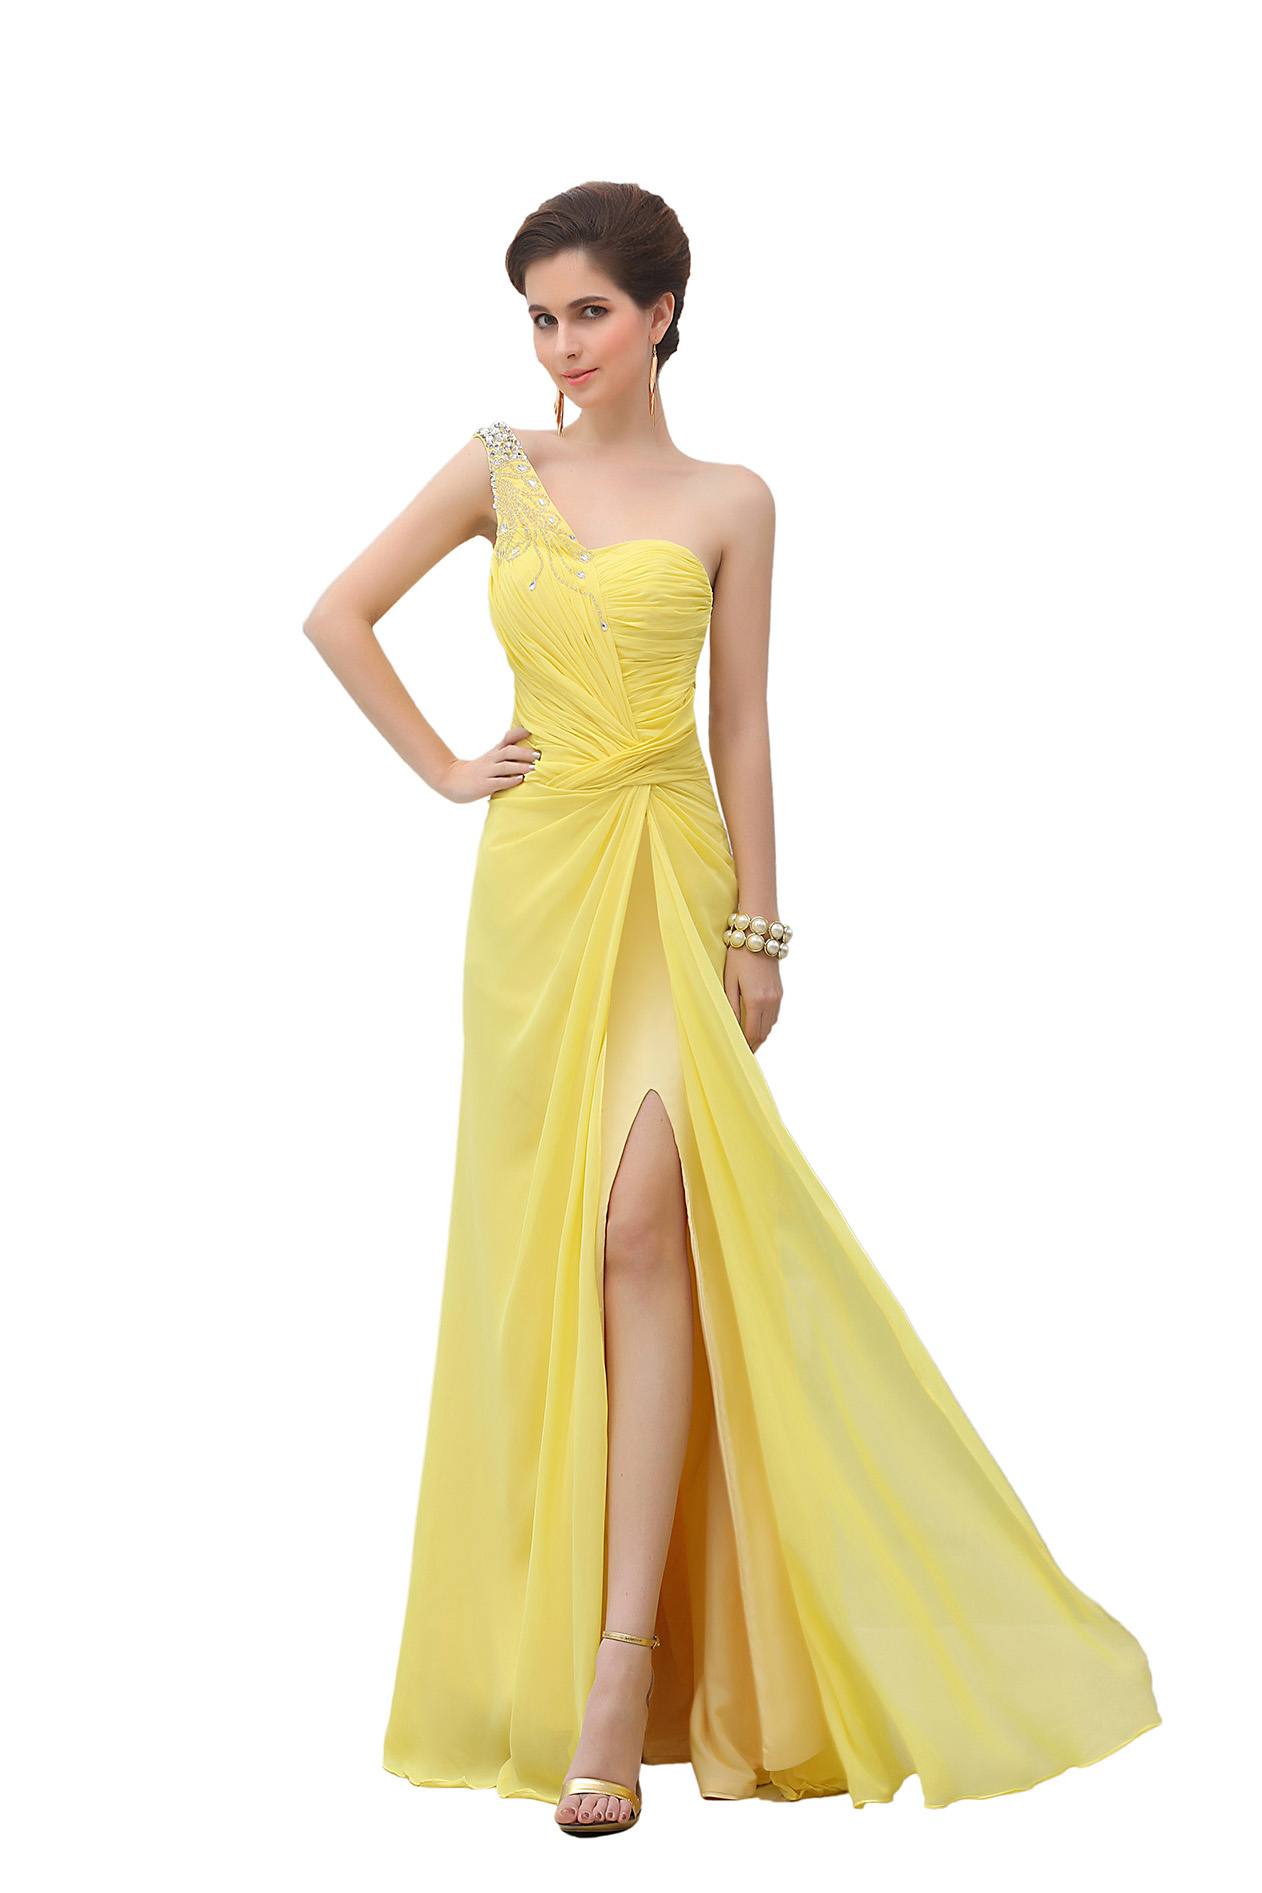 Sheath/Columnn One Shoulder Sweep/Brush Train Chiffon Prom Dress